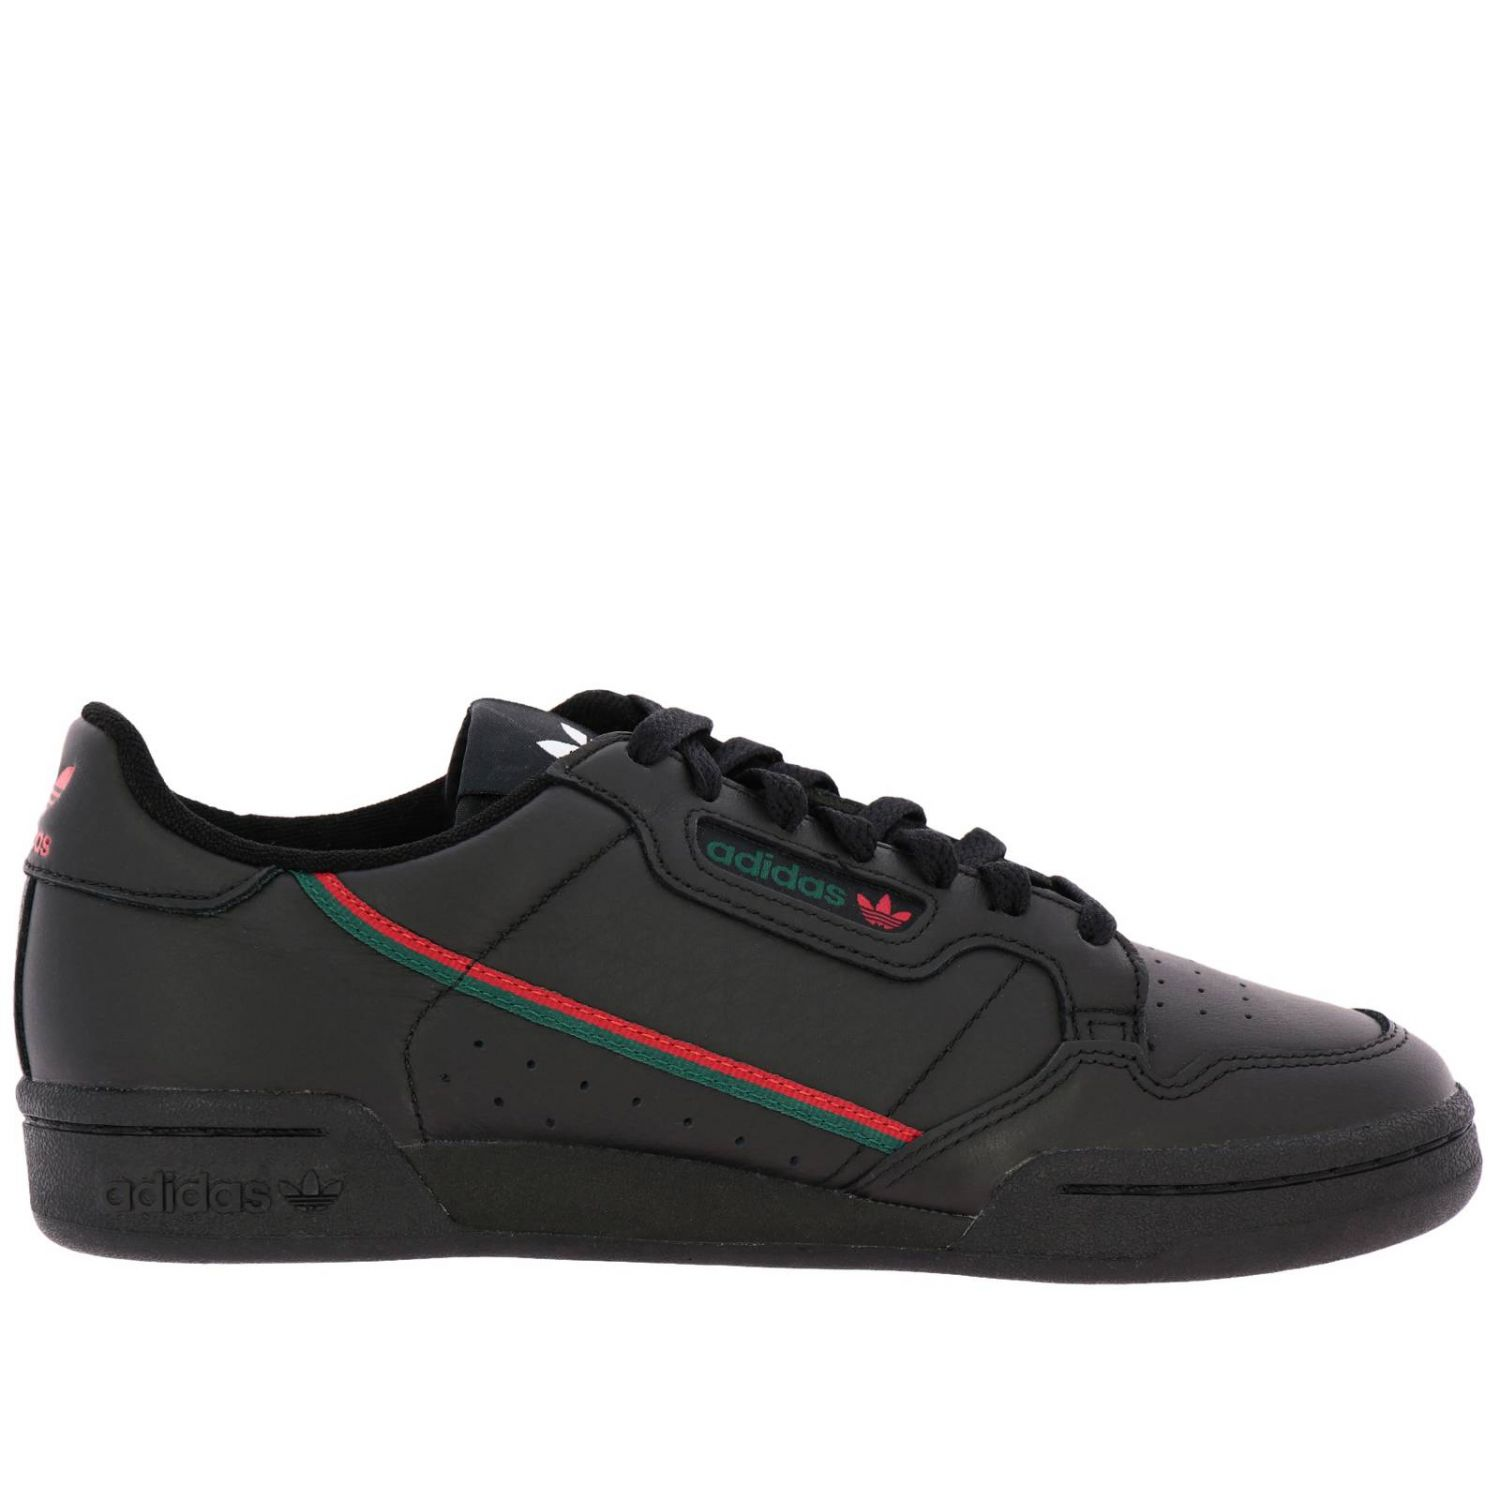 Sneakers Adidas Originals: Adidas Originals 80 Sneakers in leather with stripes black 1